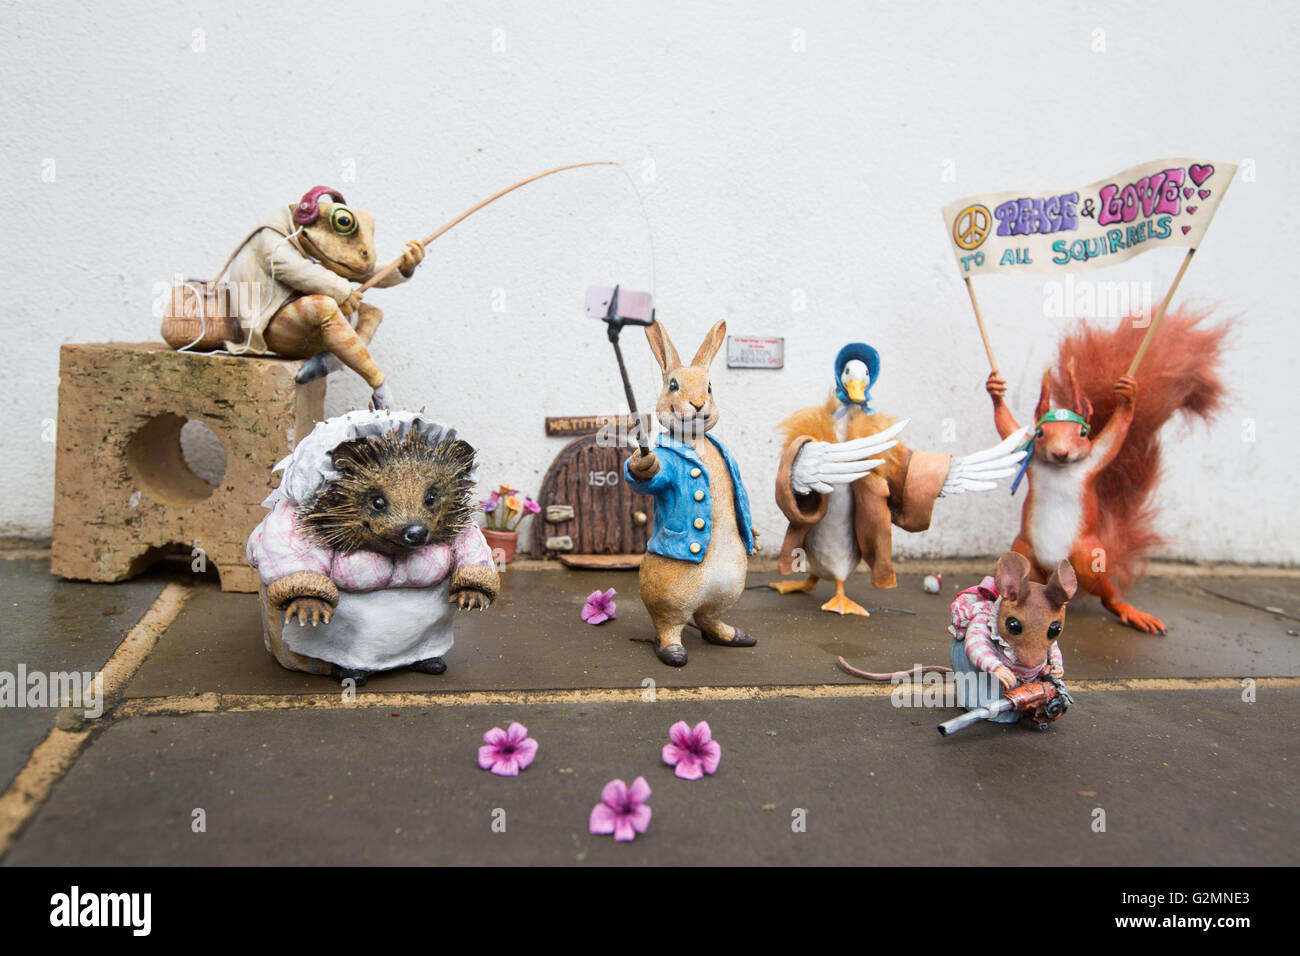 EDITORIAL USE ONLY (left to right) Miniature sculptures of Beatrix Potter characters Mr. Jeremy Fisher, Mrs. Tiggy - Stock Image